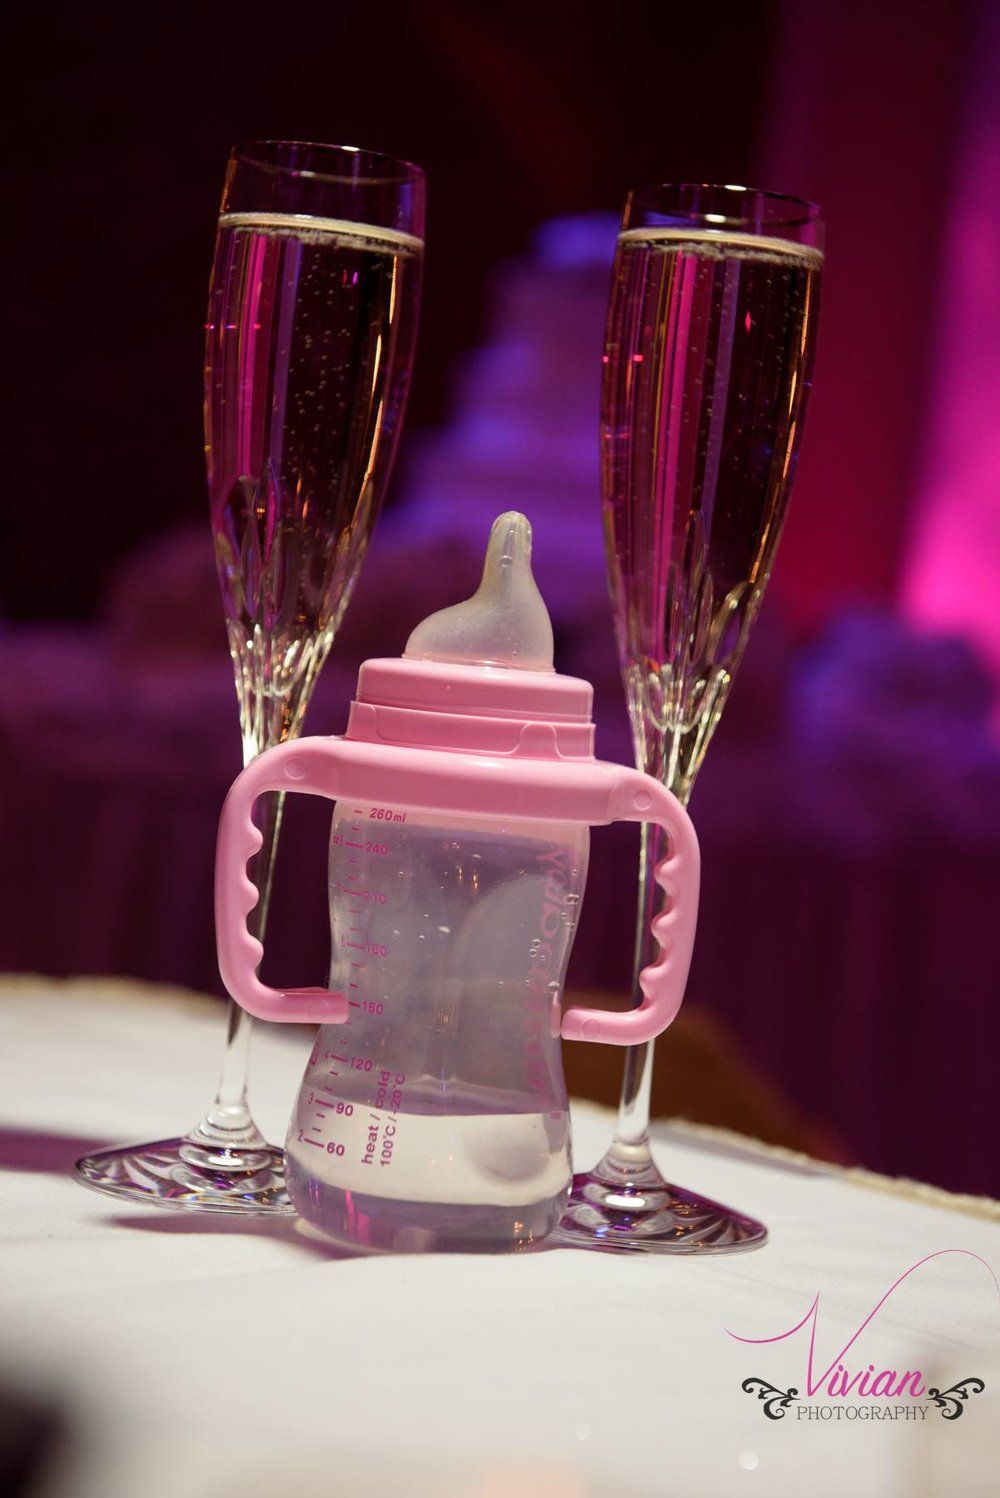 champagne-glasses-with-baby-bottle-between.jpg